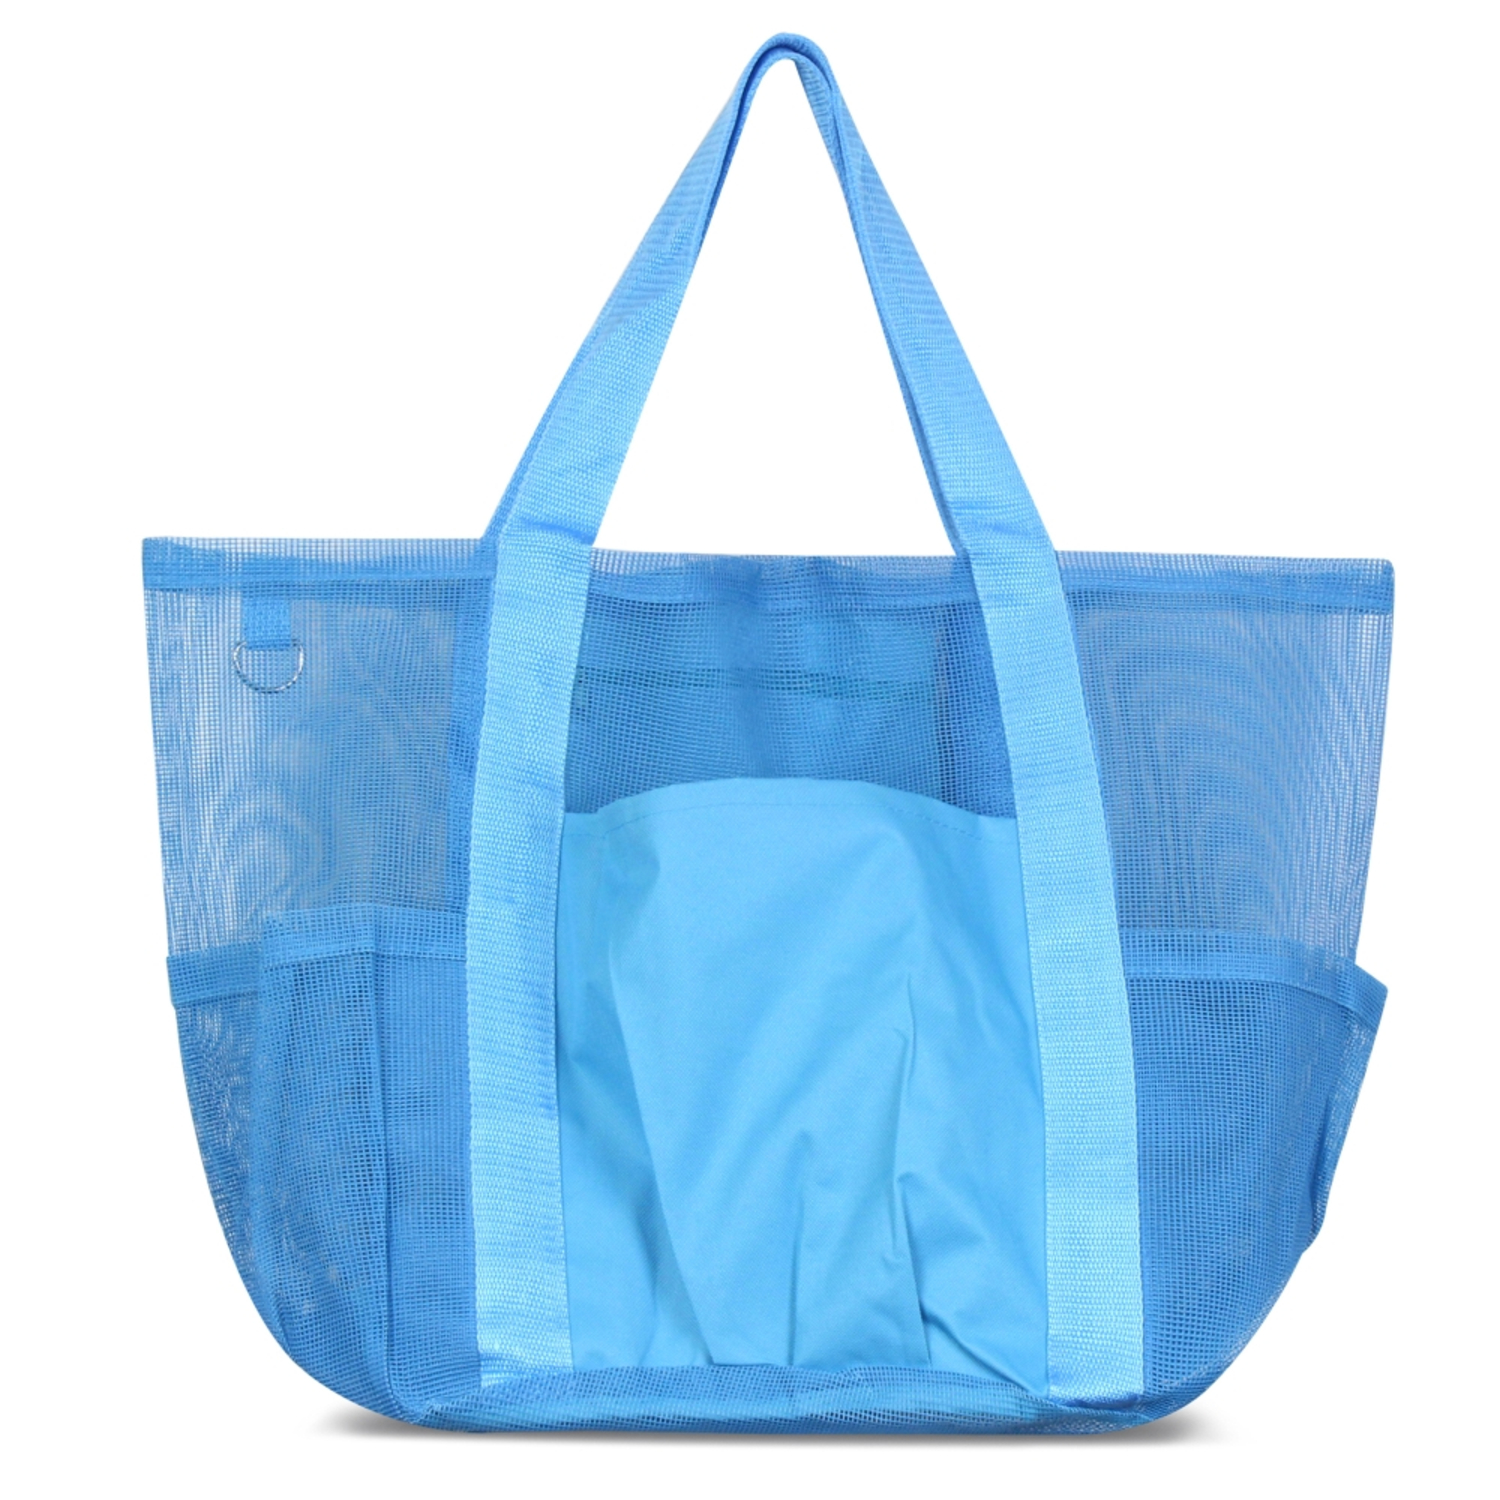 Zodaca Women All Purpose Mesh See Through Tote Carry Bag Handbag for Beach Laundry Grocery Shopping